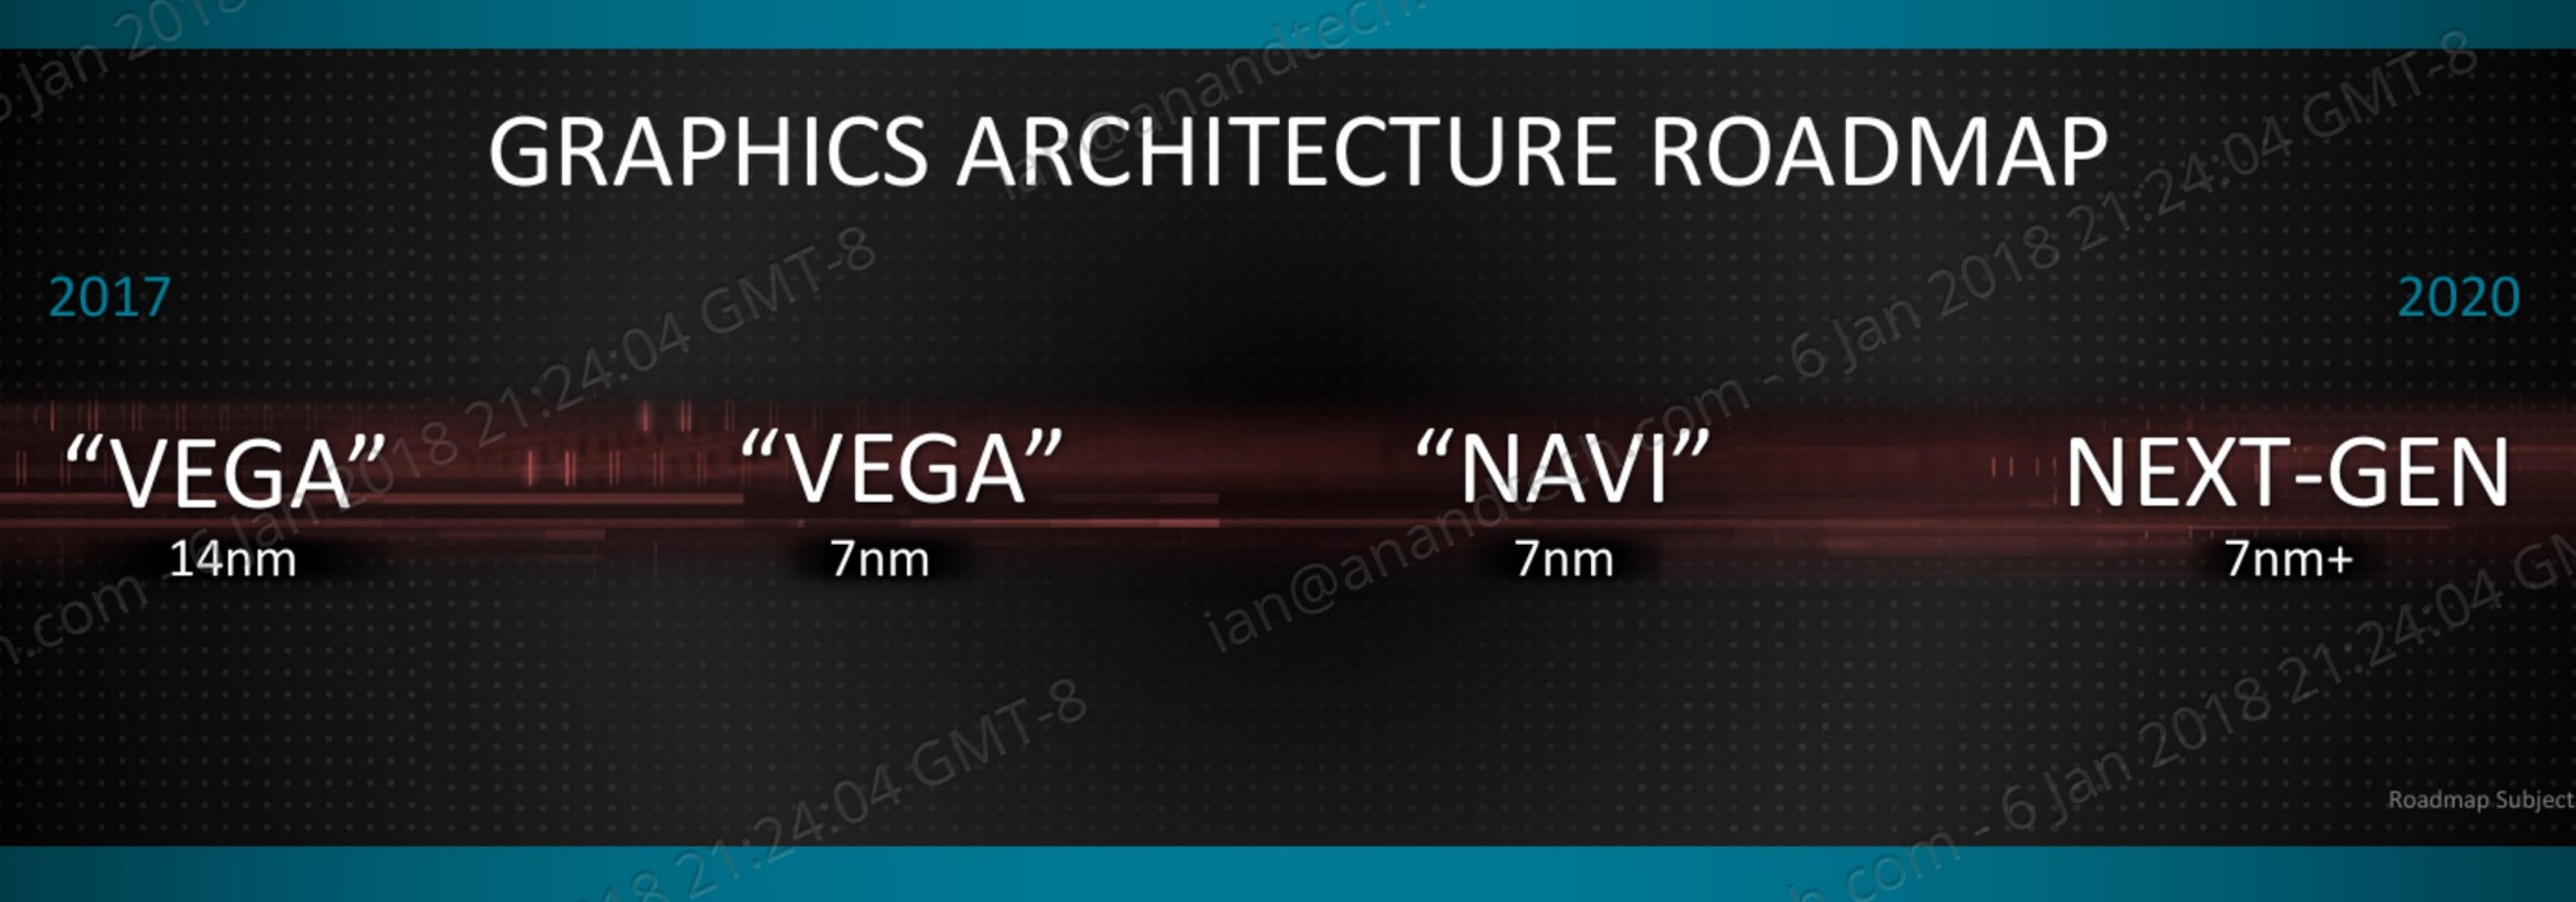 AMD Tech Day at CES: 2018 Roadmap Revealed, with Ryzen APUs